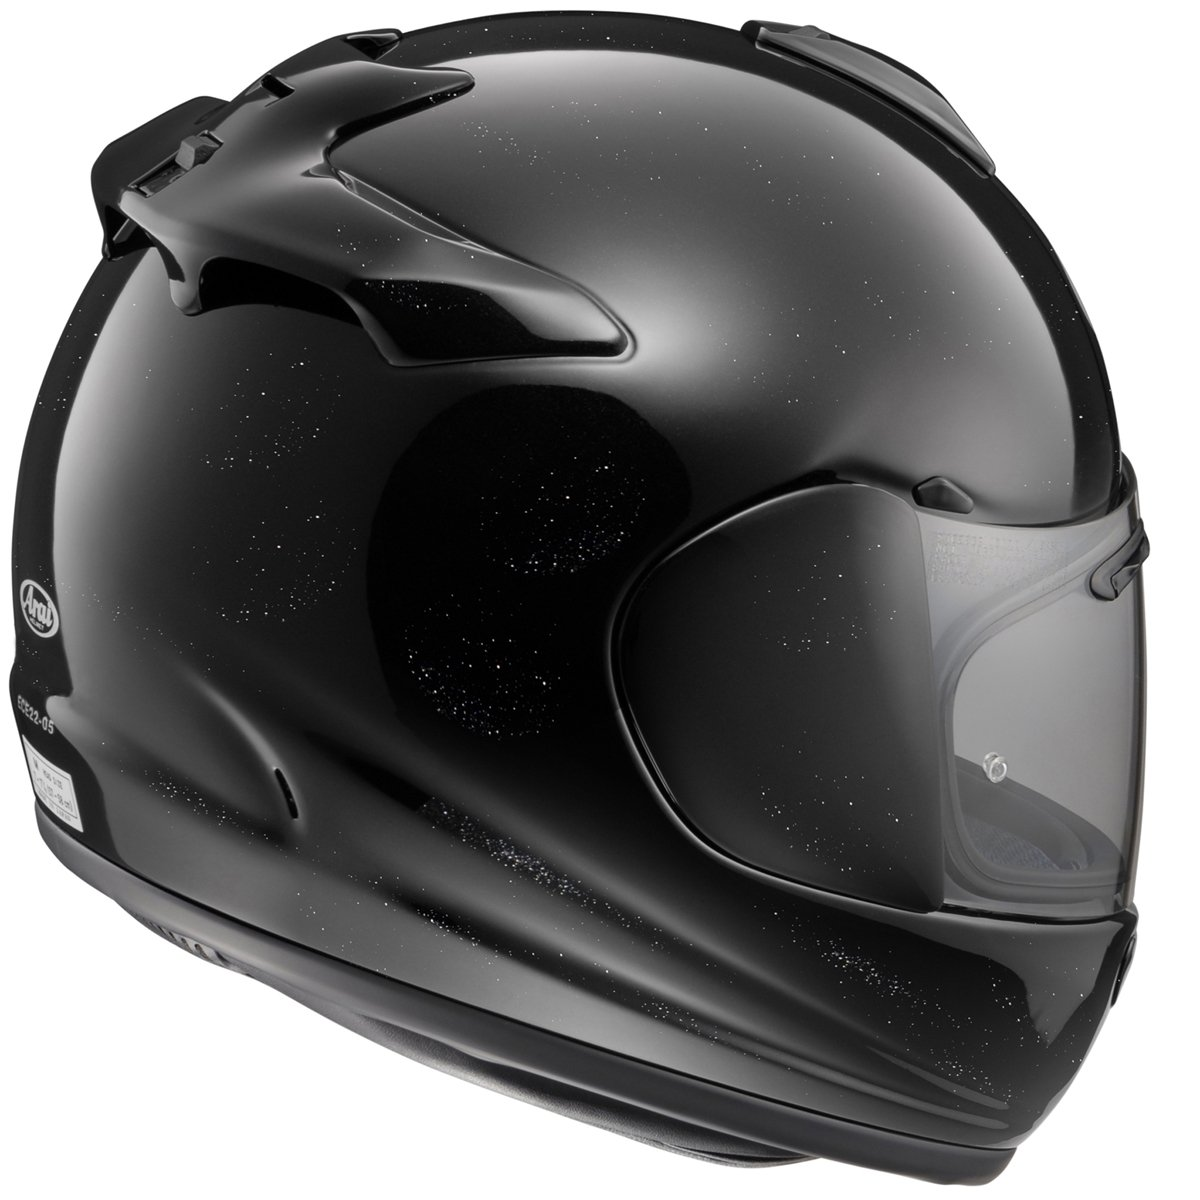 Amazon.com: Arai Axces III 3 Sports Full Face Motorcycle Motorbike Helmet Diamond Black Small: Automotive